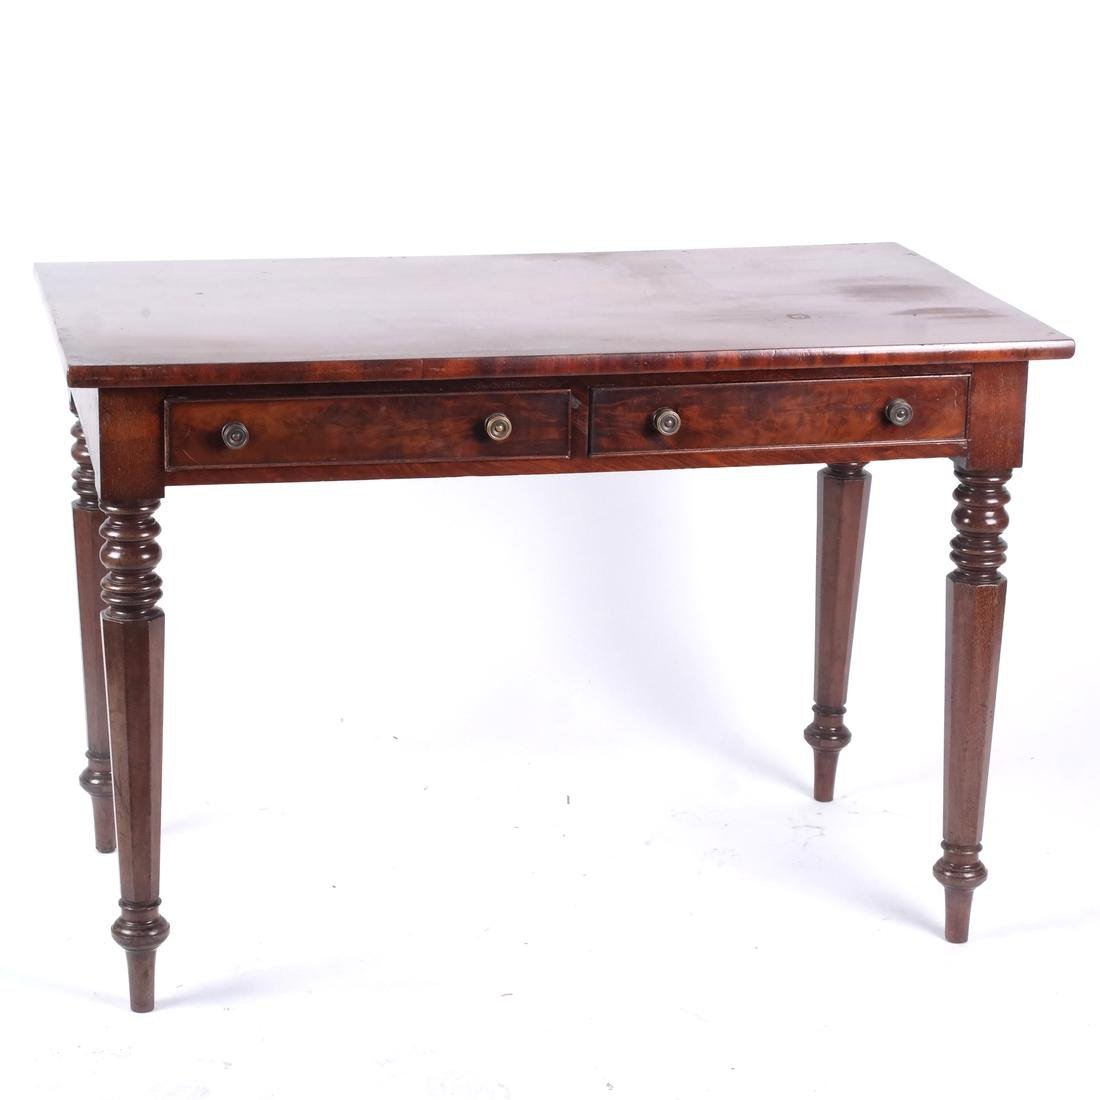 Antique English Desk/Writing Table